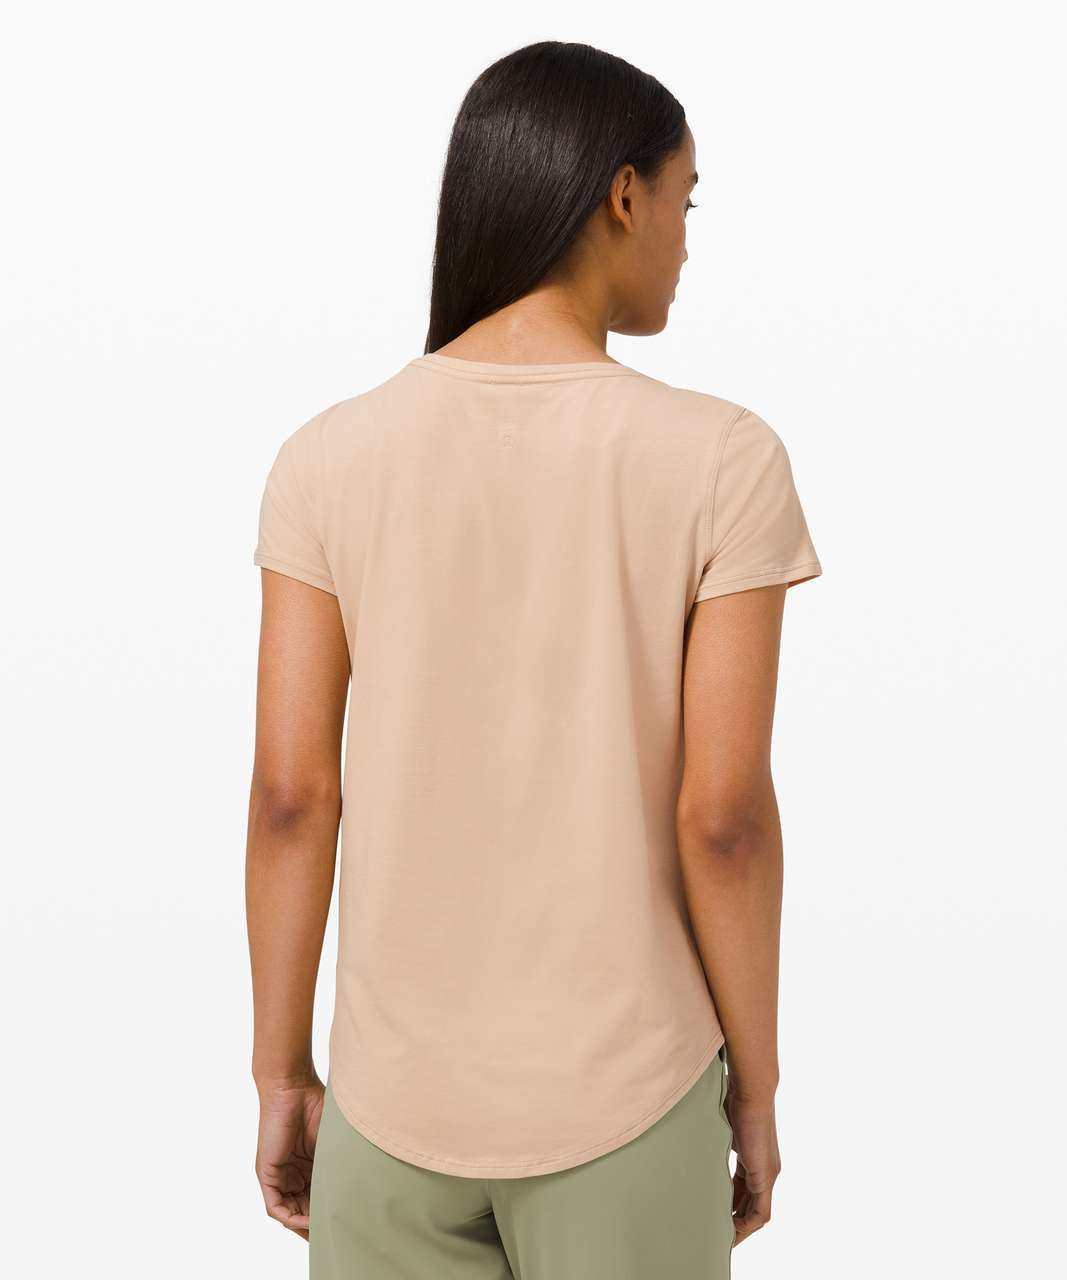 Lululemon Love Tee V - Cafe Au Lait